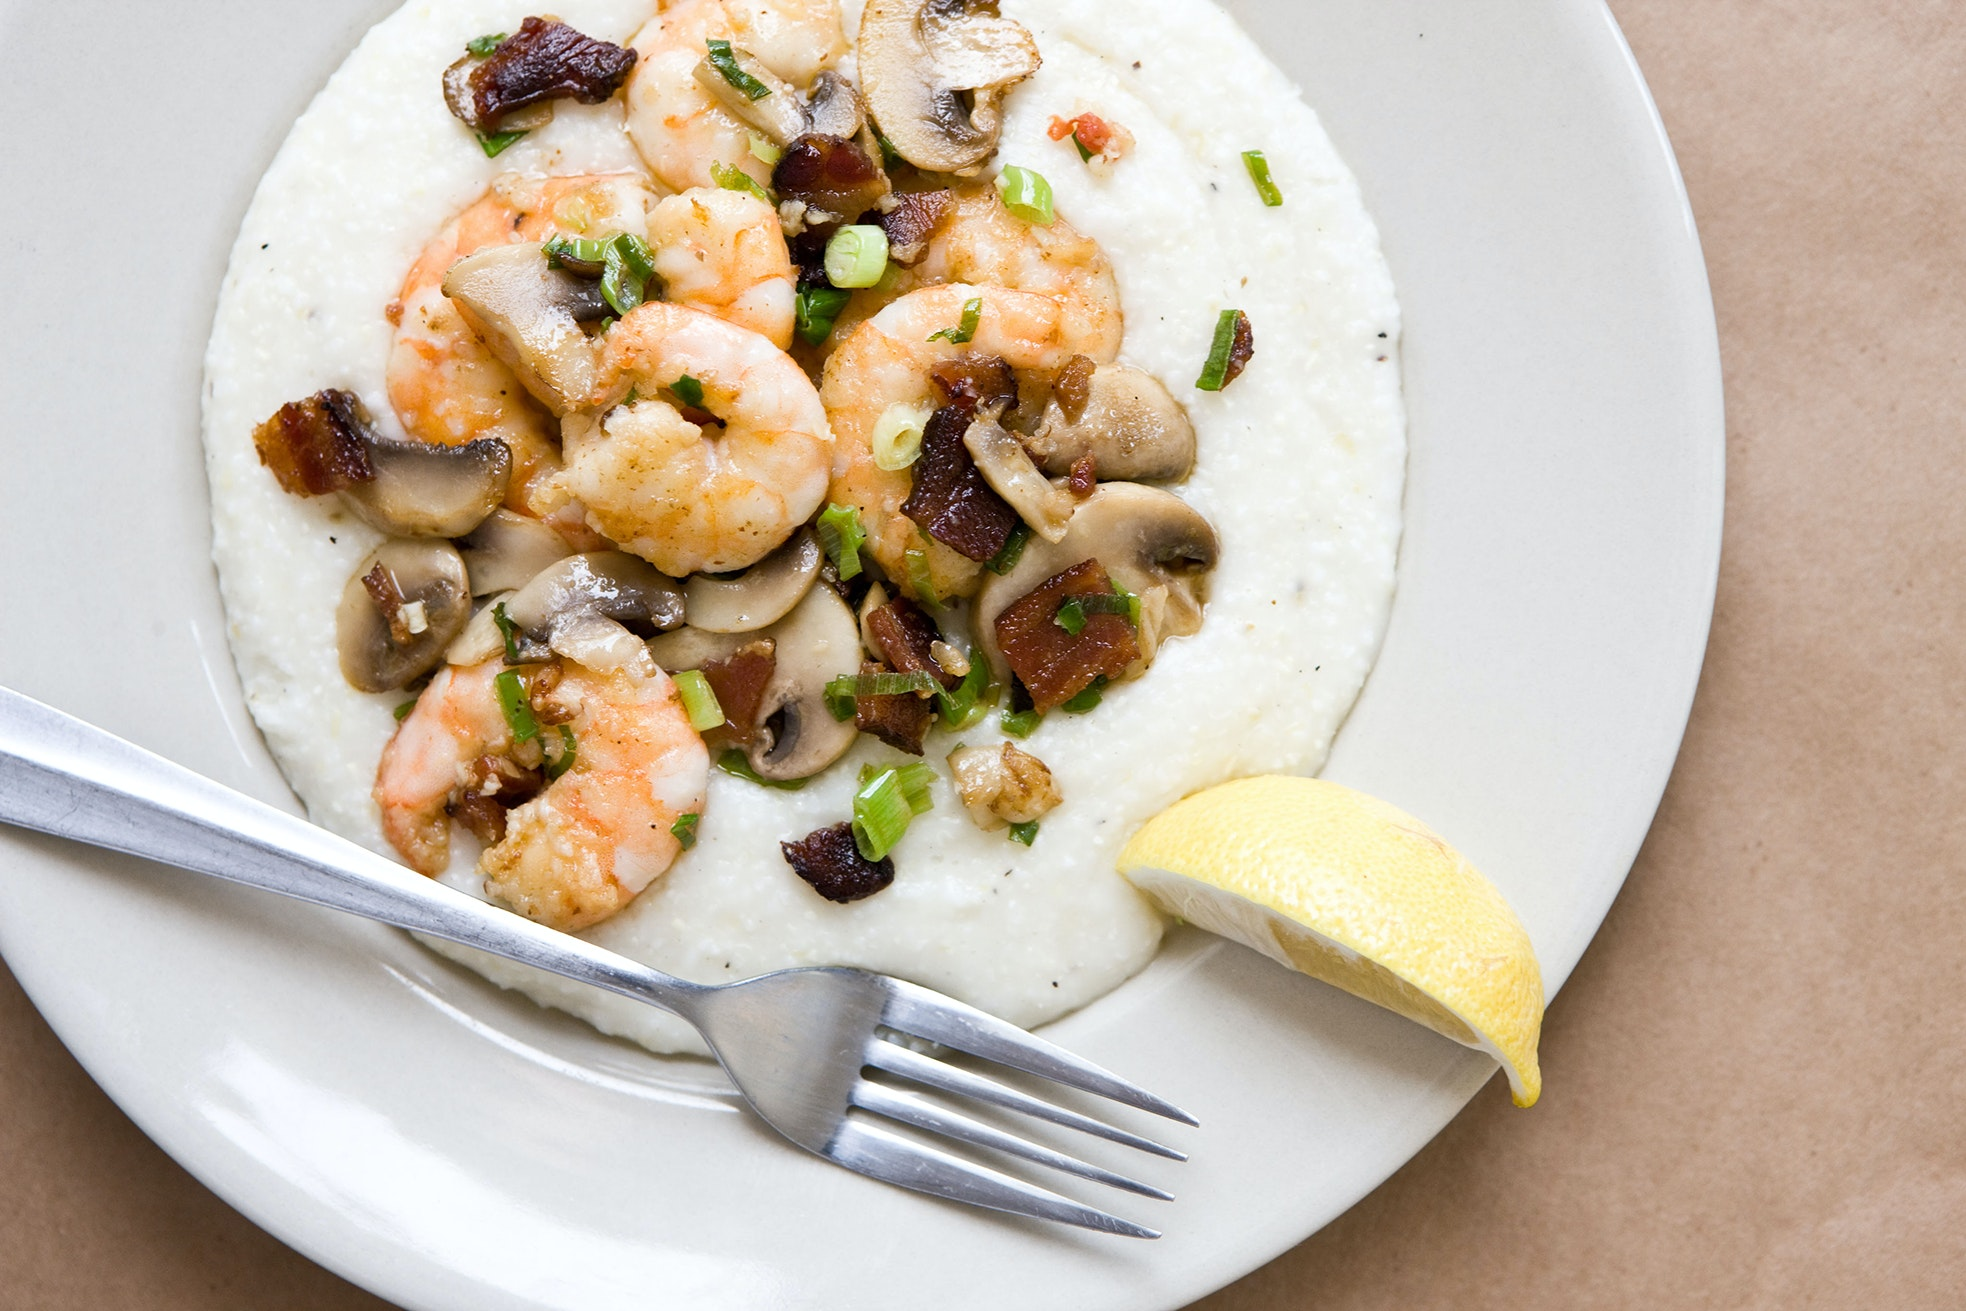 While you can order shrimp and grits all over the country, you can taste it where it originated in Charleston.